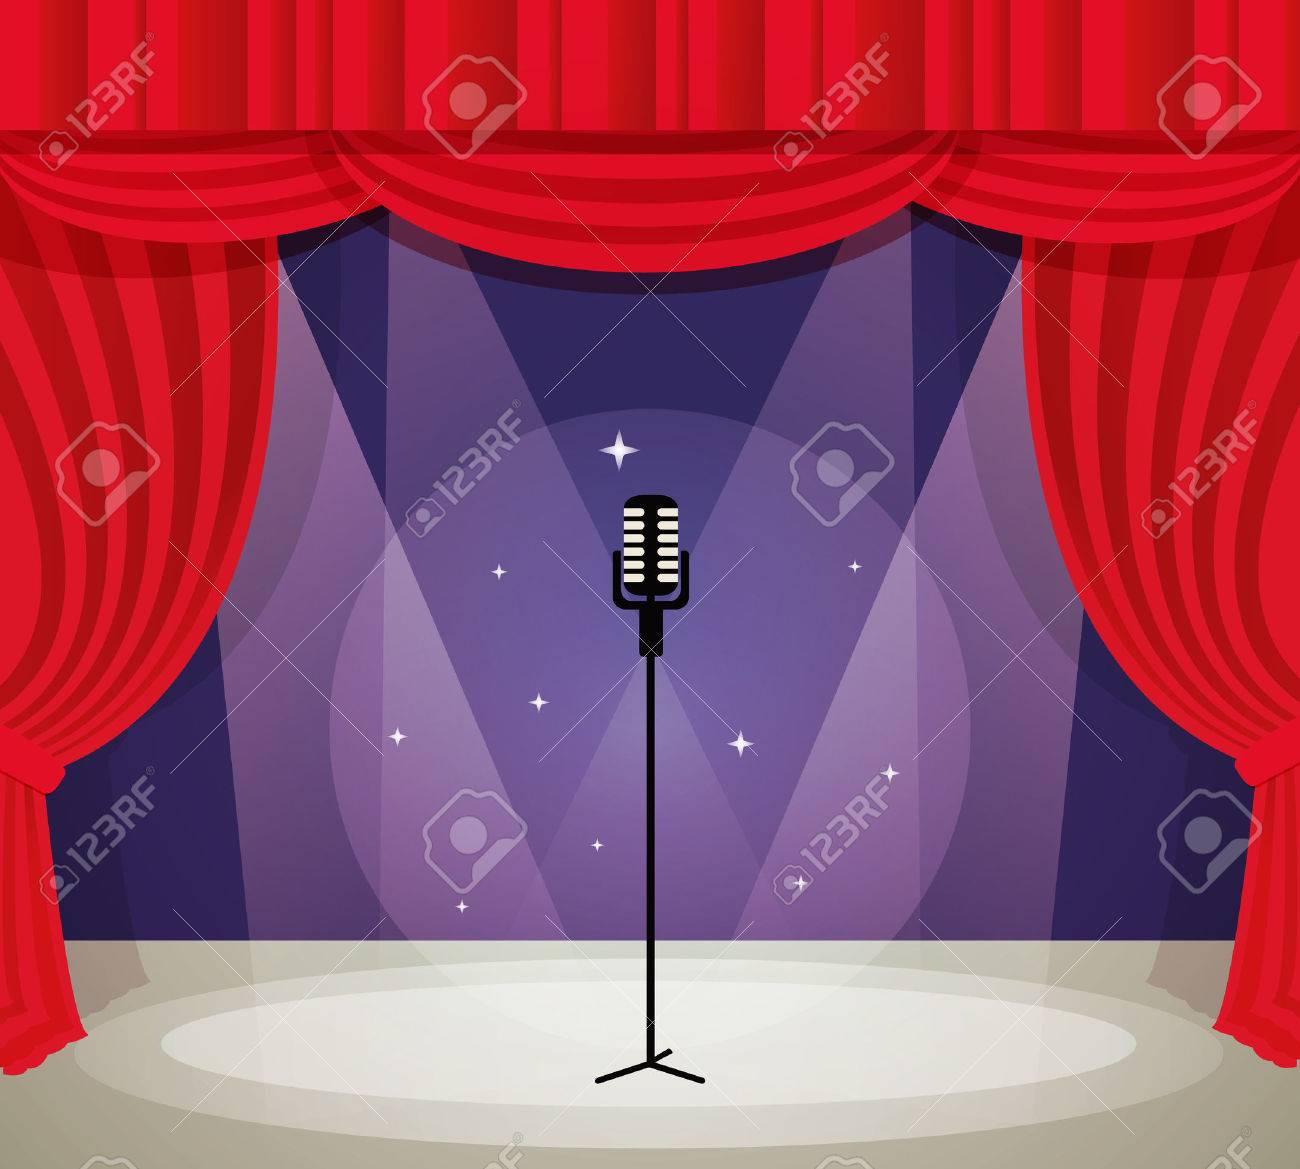 Red curtain spotlight - Stage With Microphone In Spotlight With Red Curtain Background Vector Illustration Stock Vector 29454865